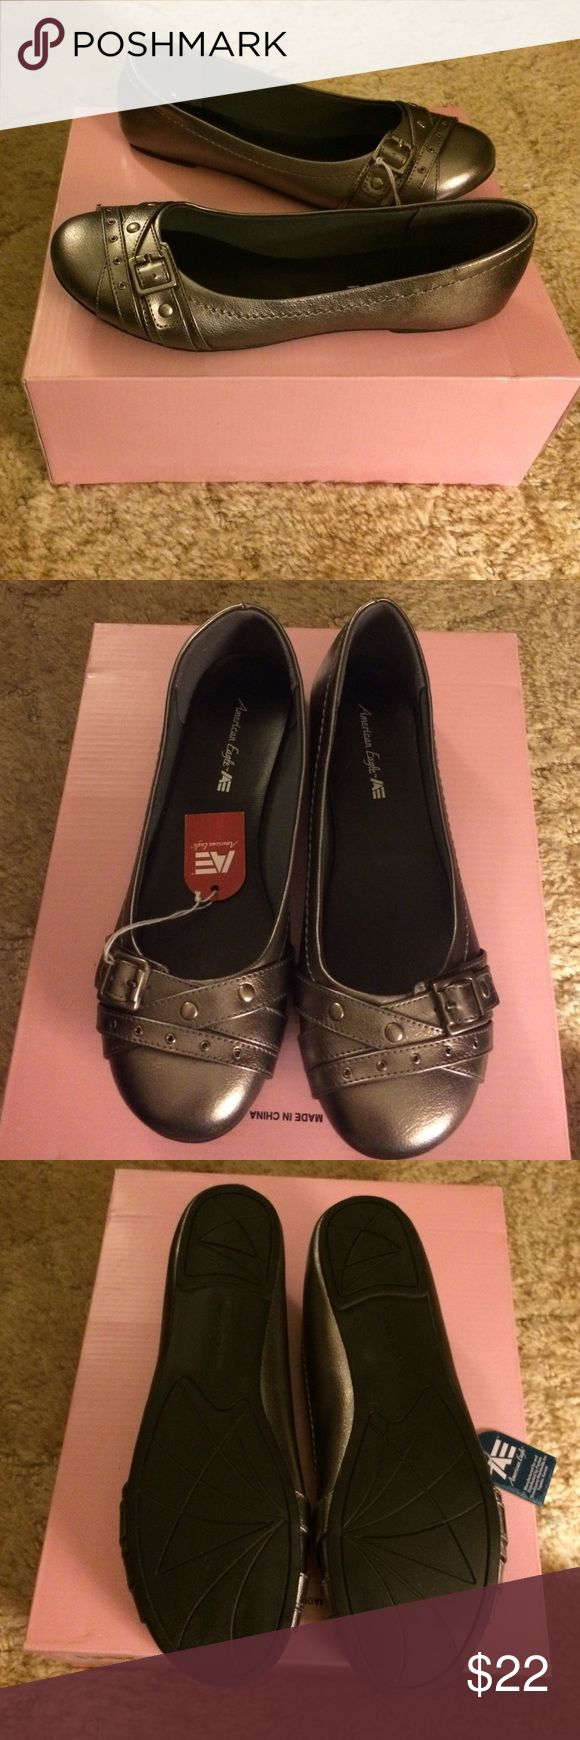 Silver flat shoes Never worn with tags American Eagle Outfitters Shoes Flats & Loafers